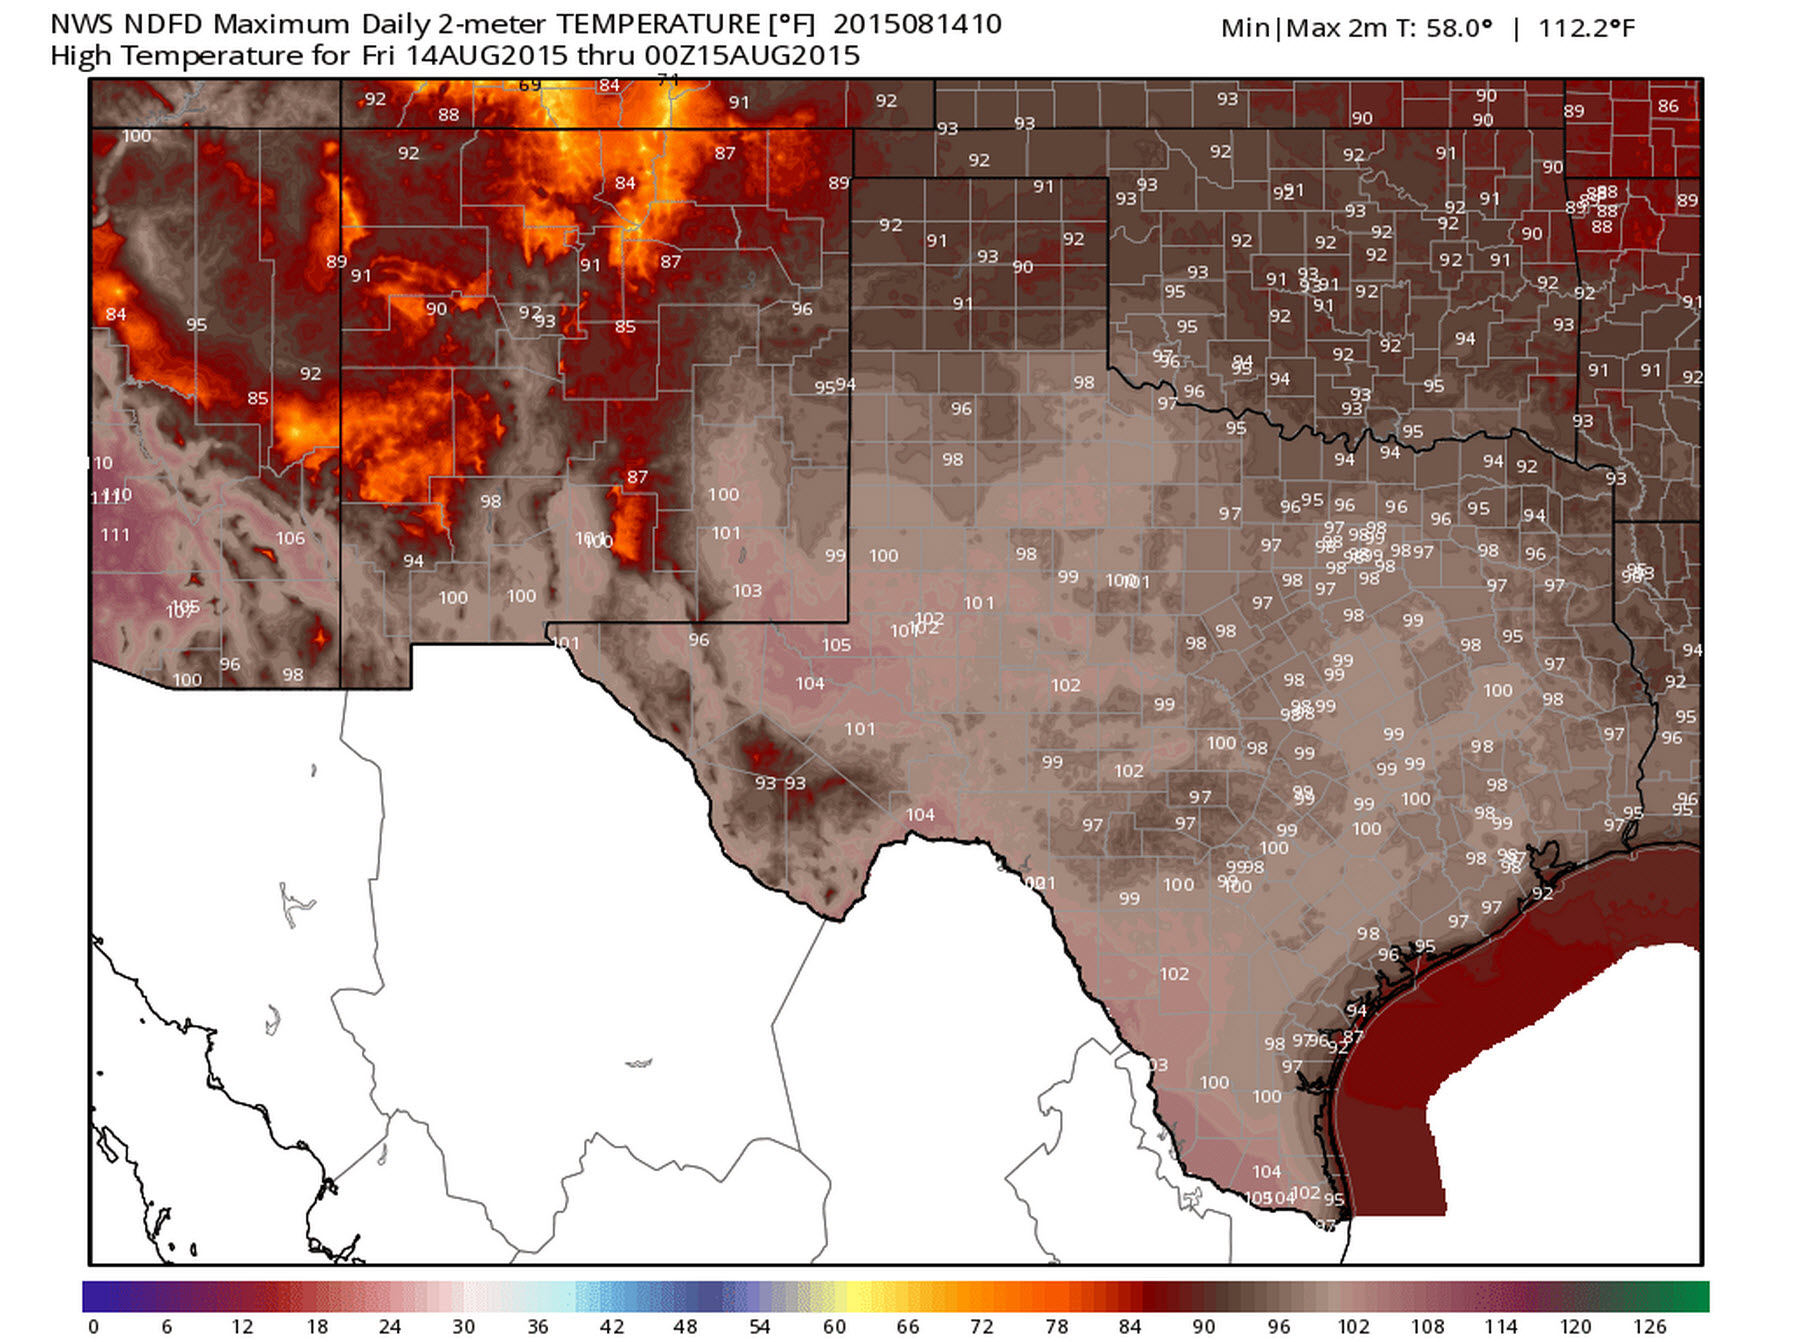 High Temperature Forecast for Friday, August 14